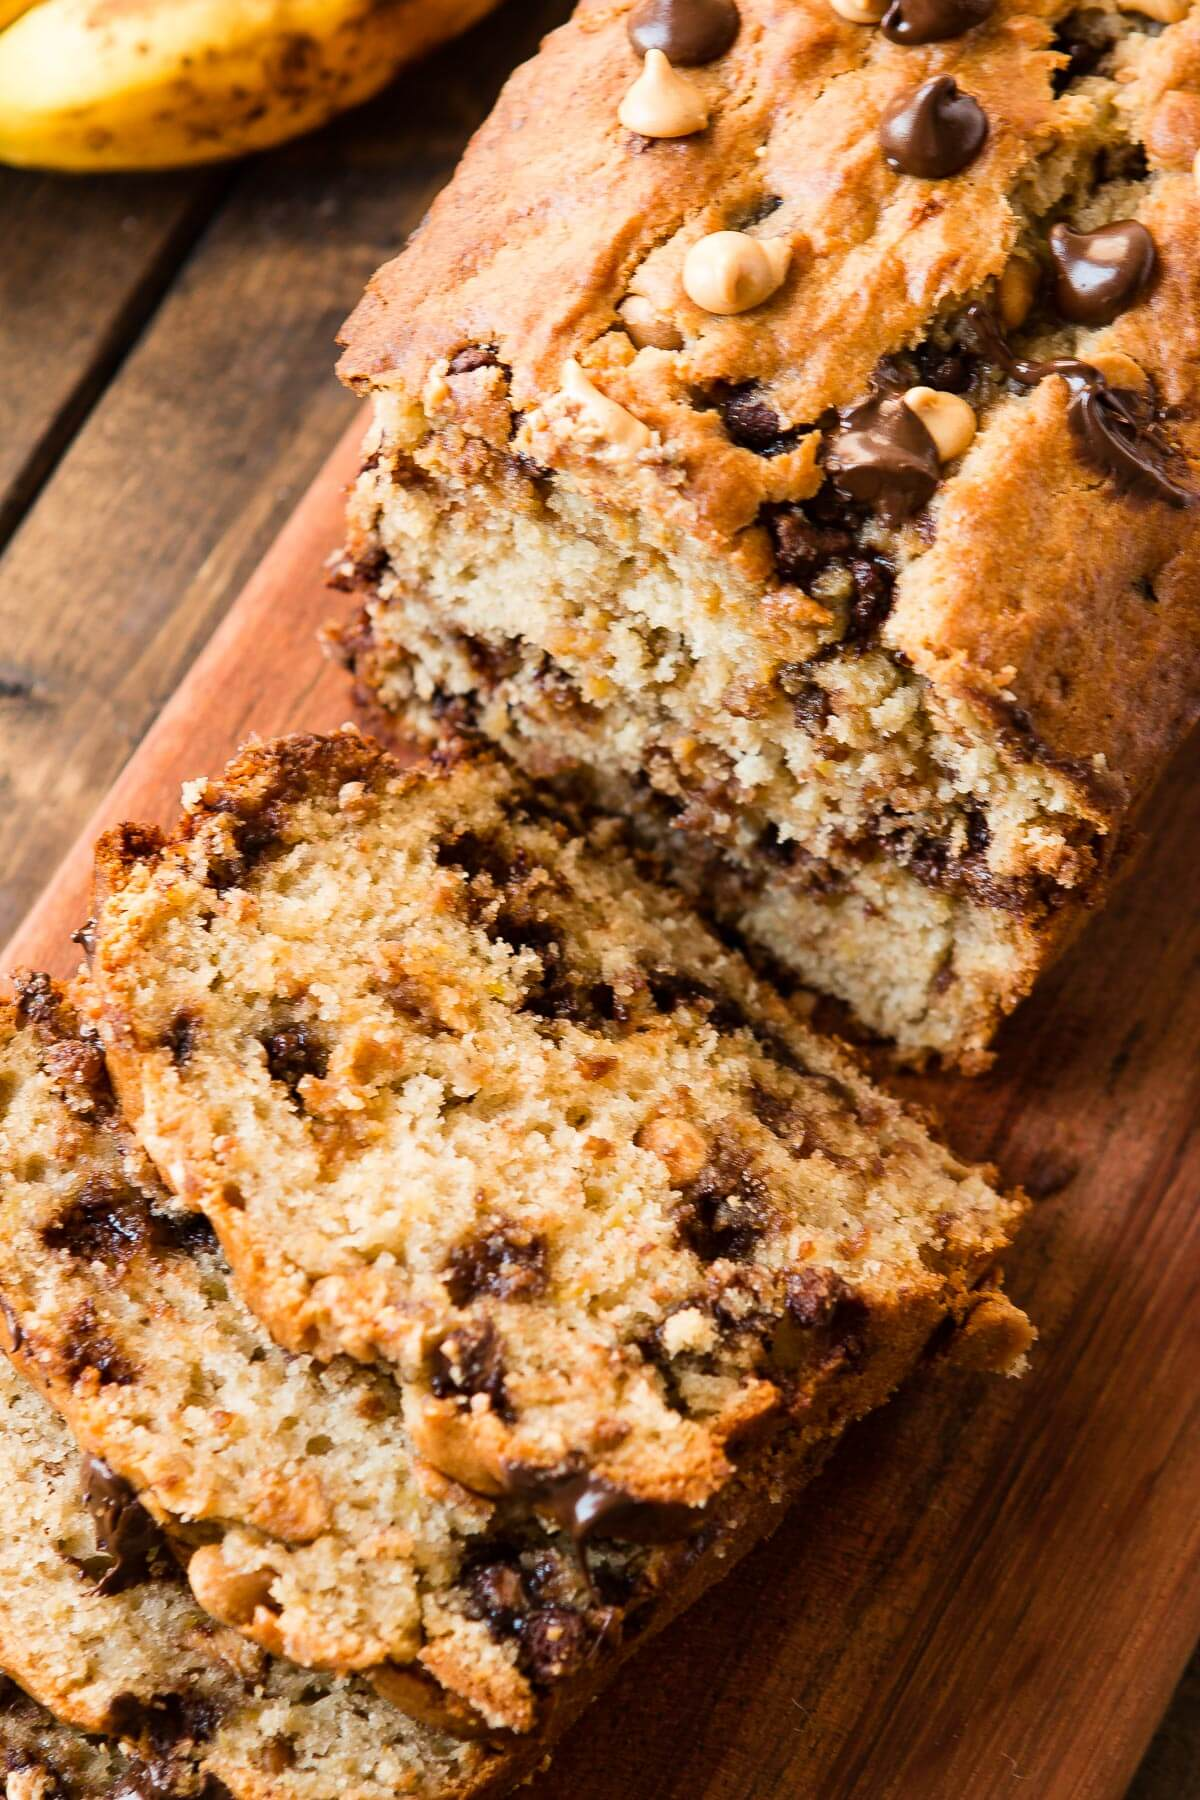 How to make the most delicious banana bread that is super moist and full of flavor. Add peanut butter! ohsweetbsail.com